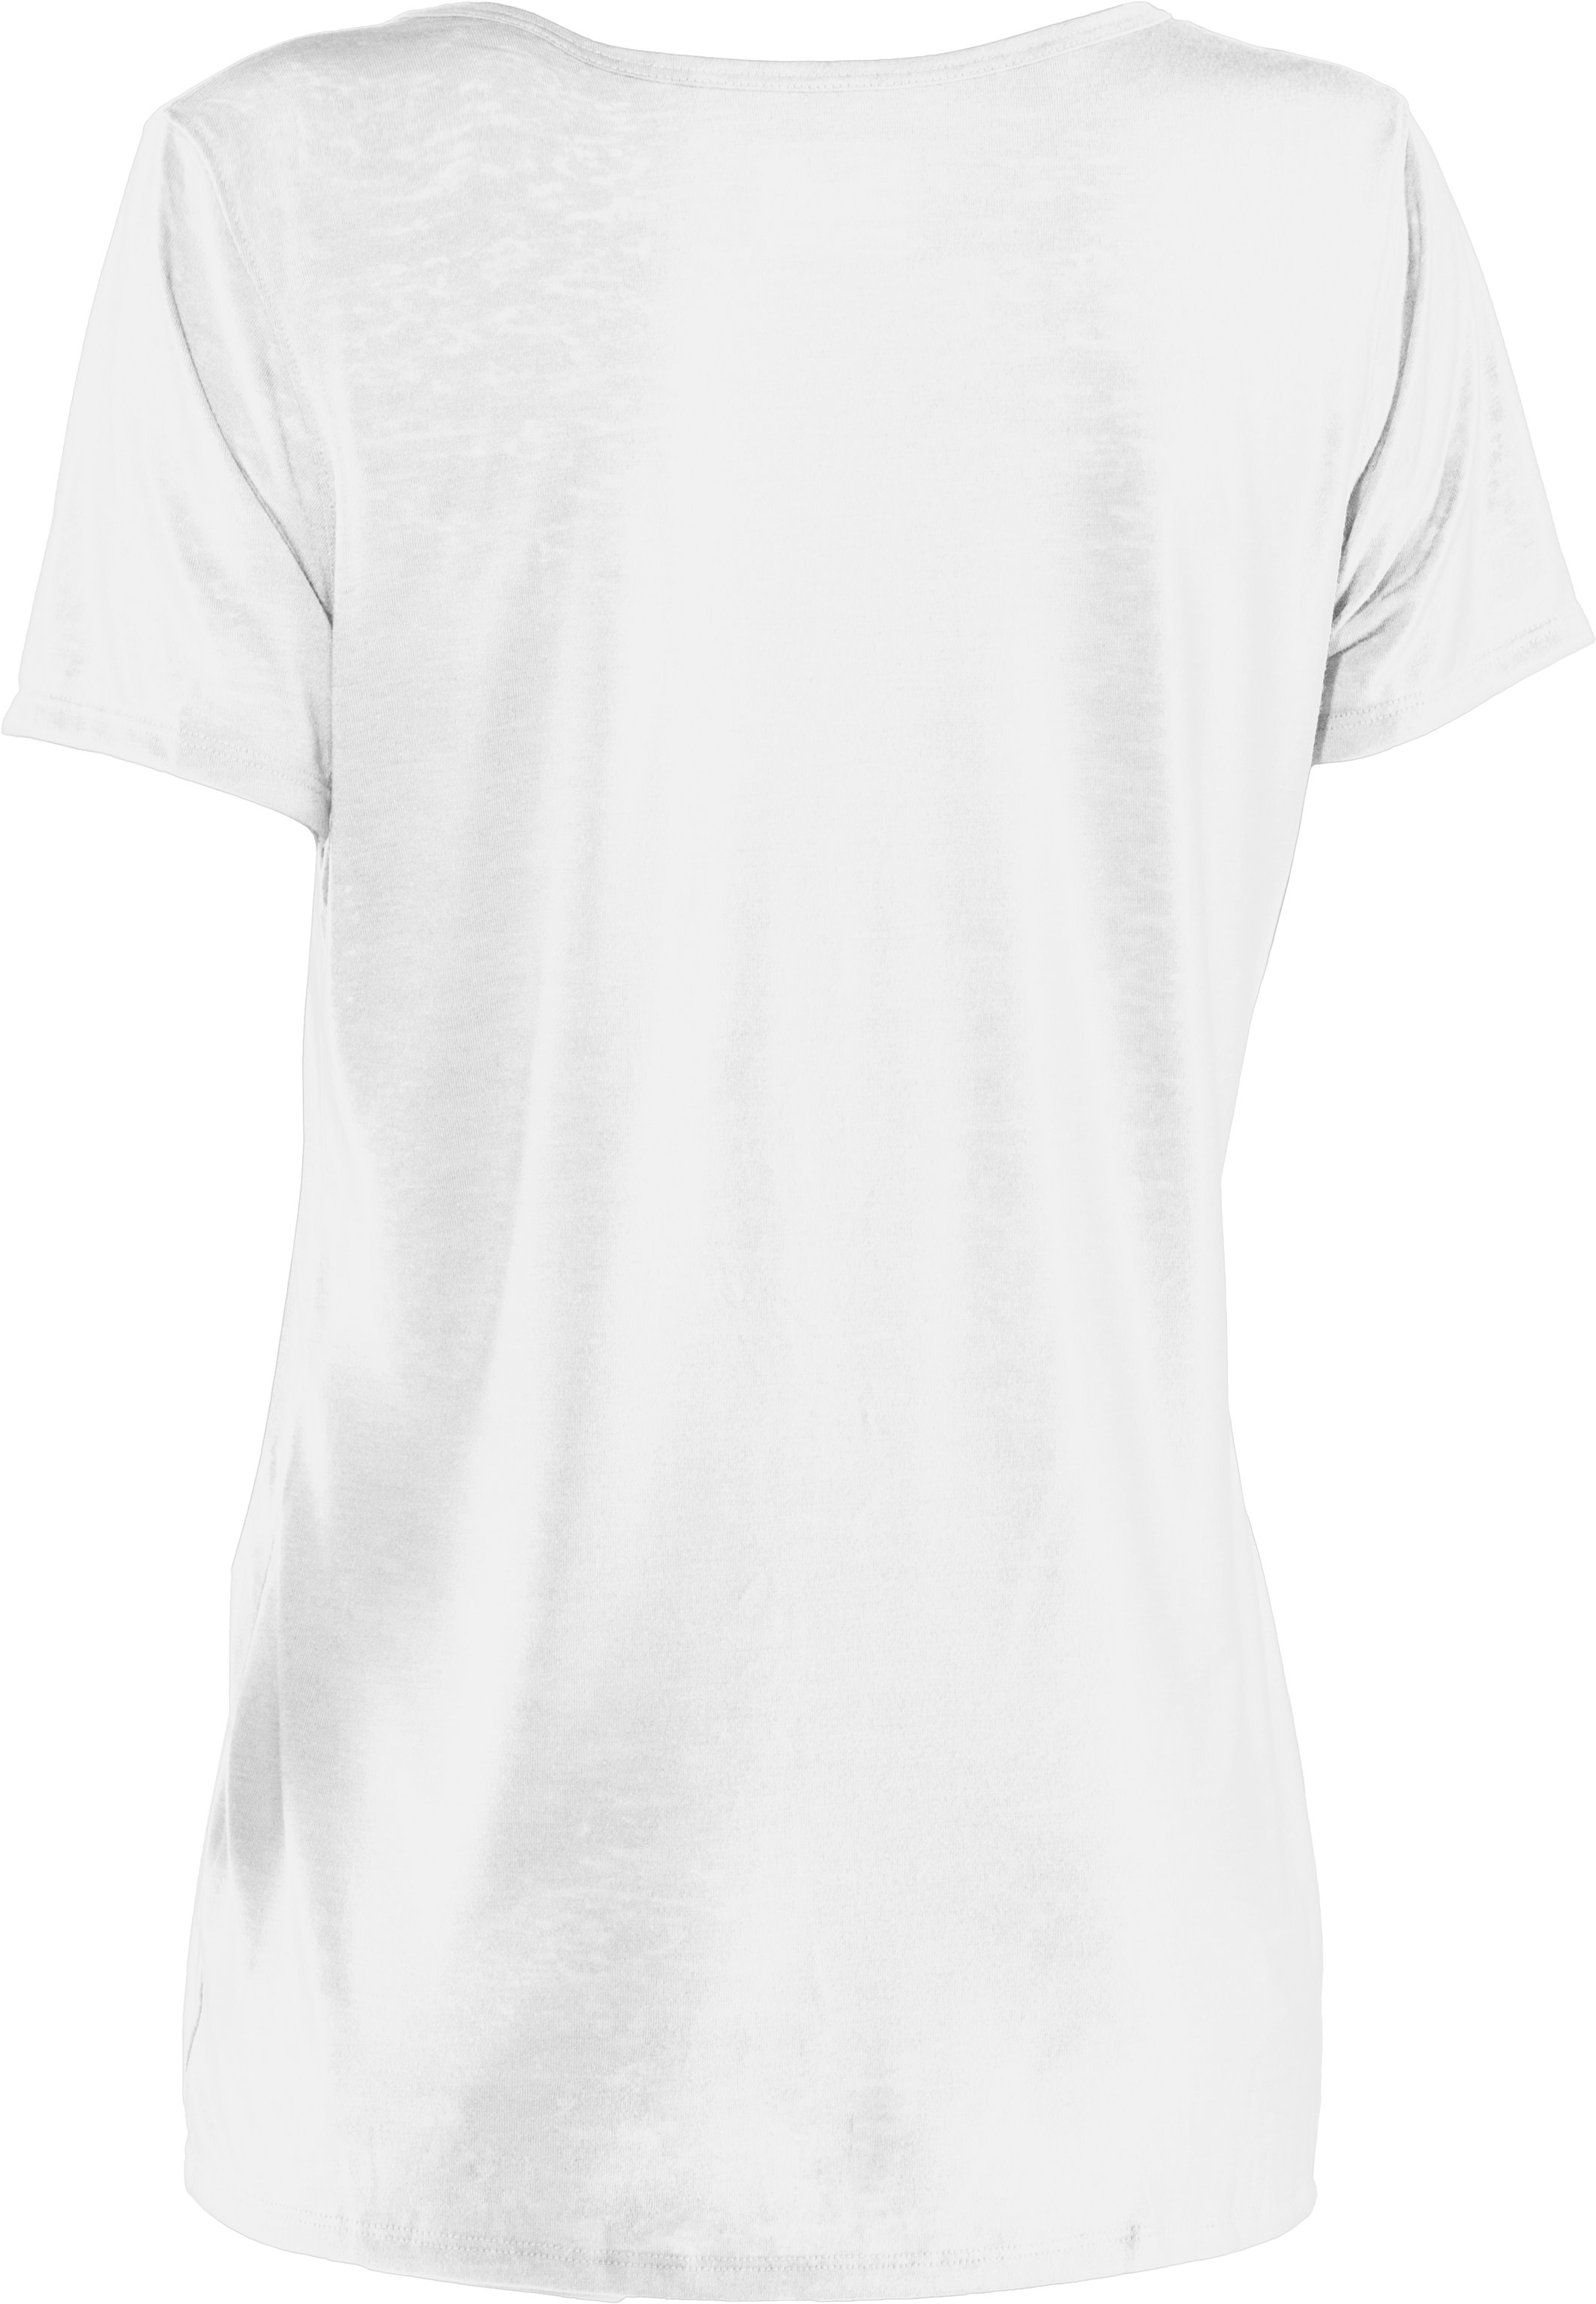 Women's Achieve Burnout T-Shirt, White